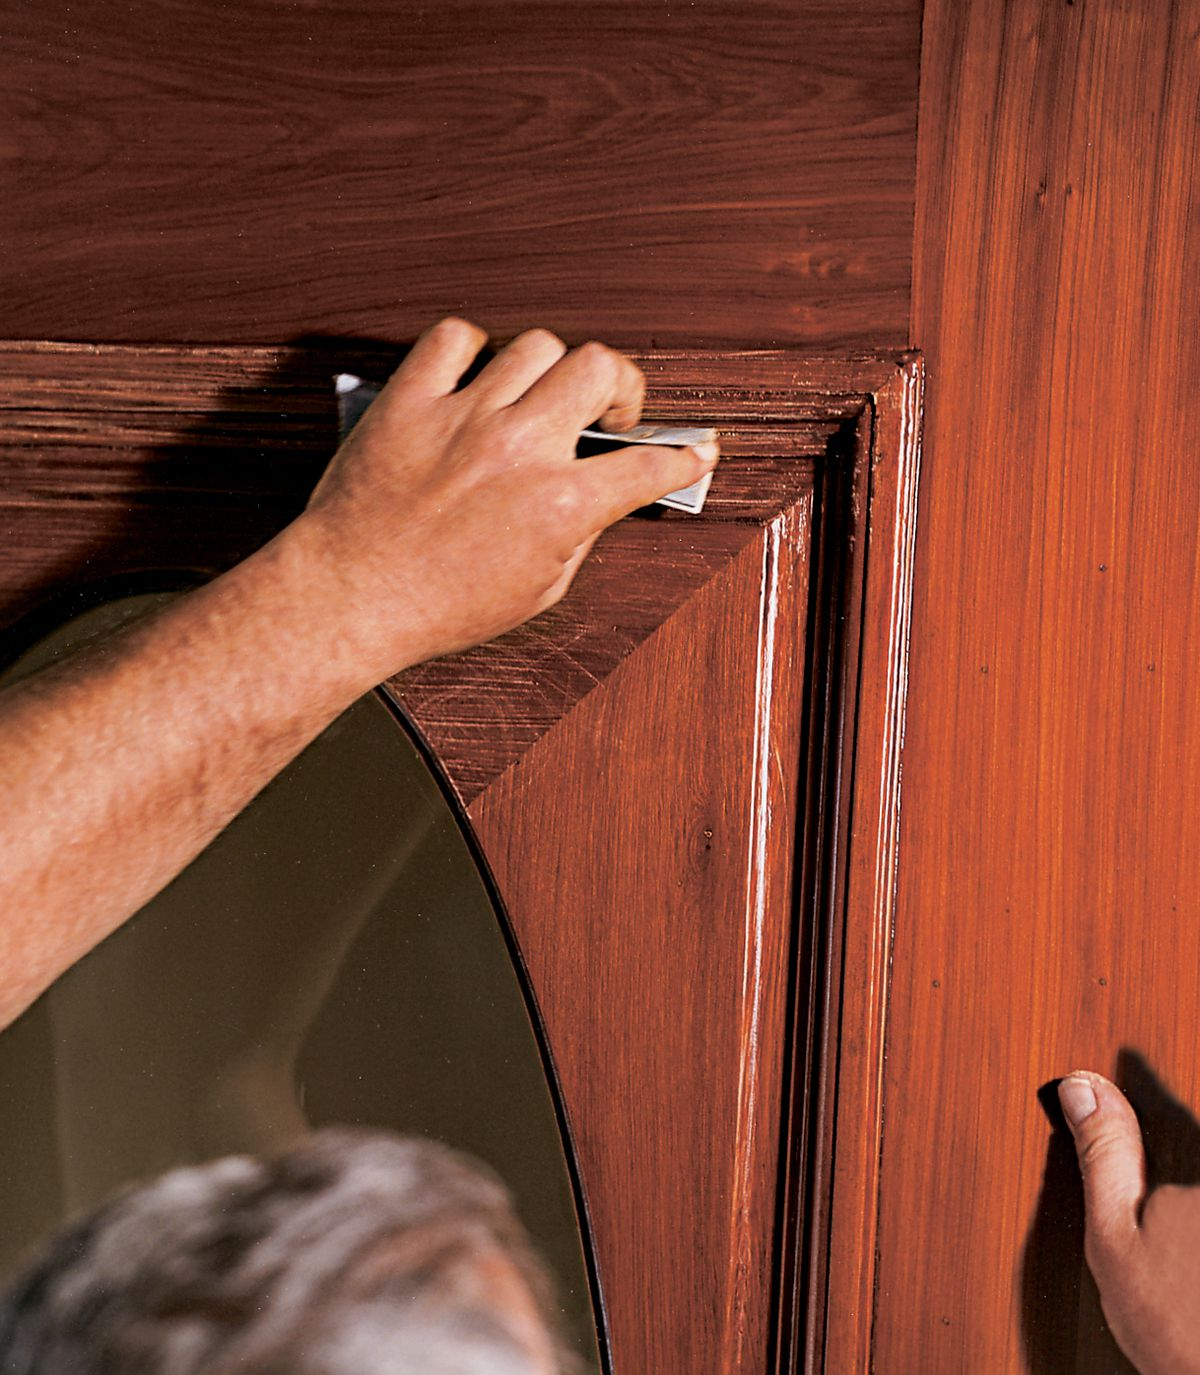 Man Applies Final Finishing Coat On Door And Then Attaches Hardware